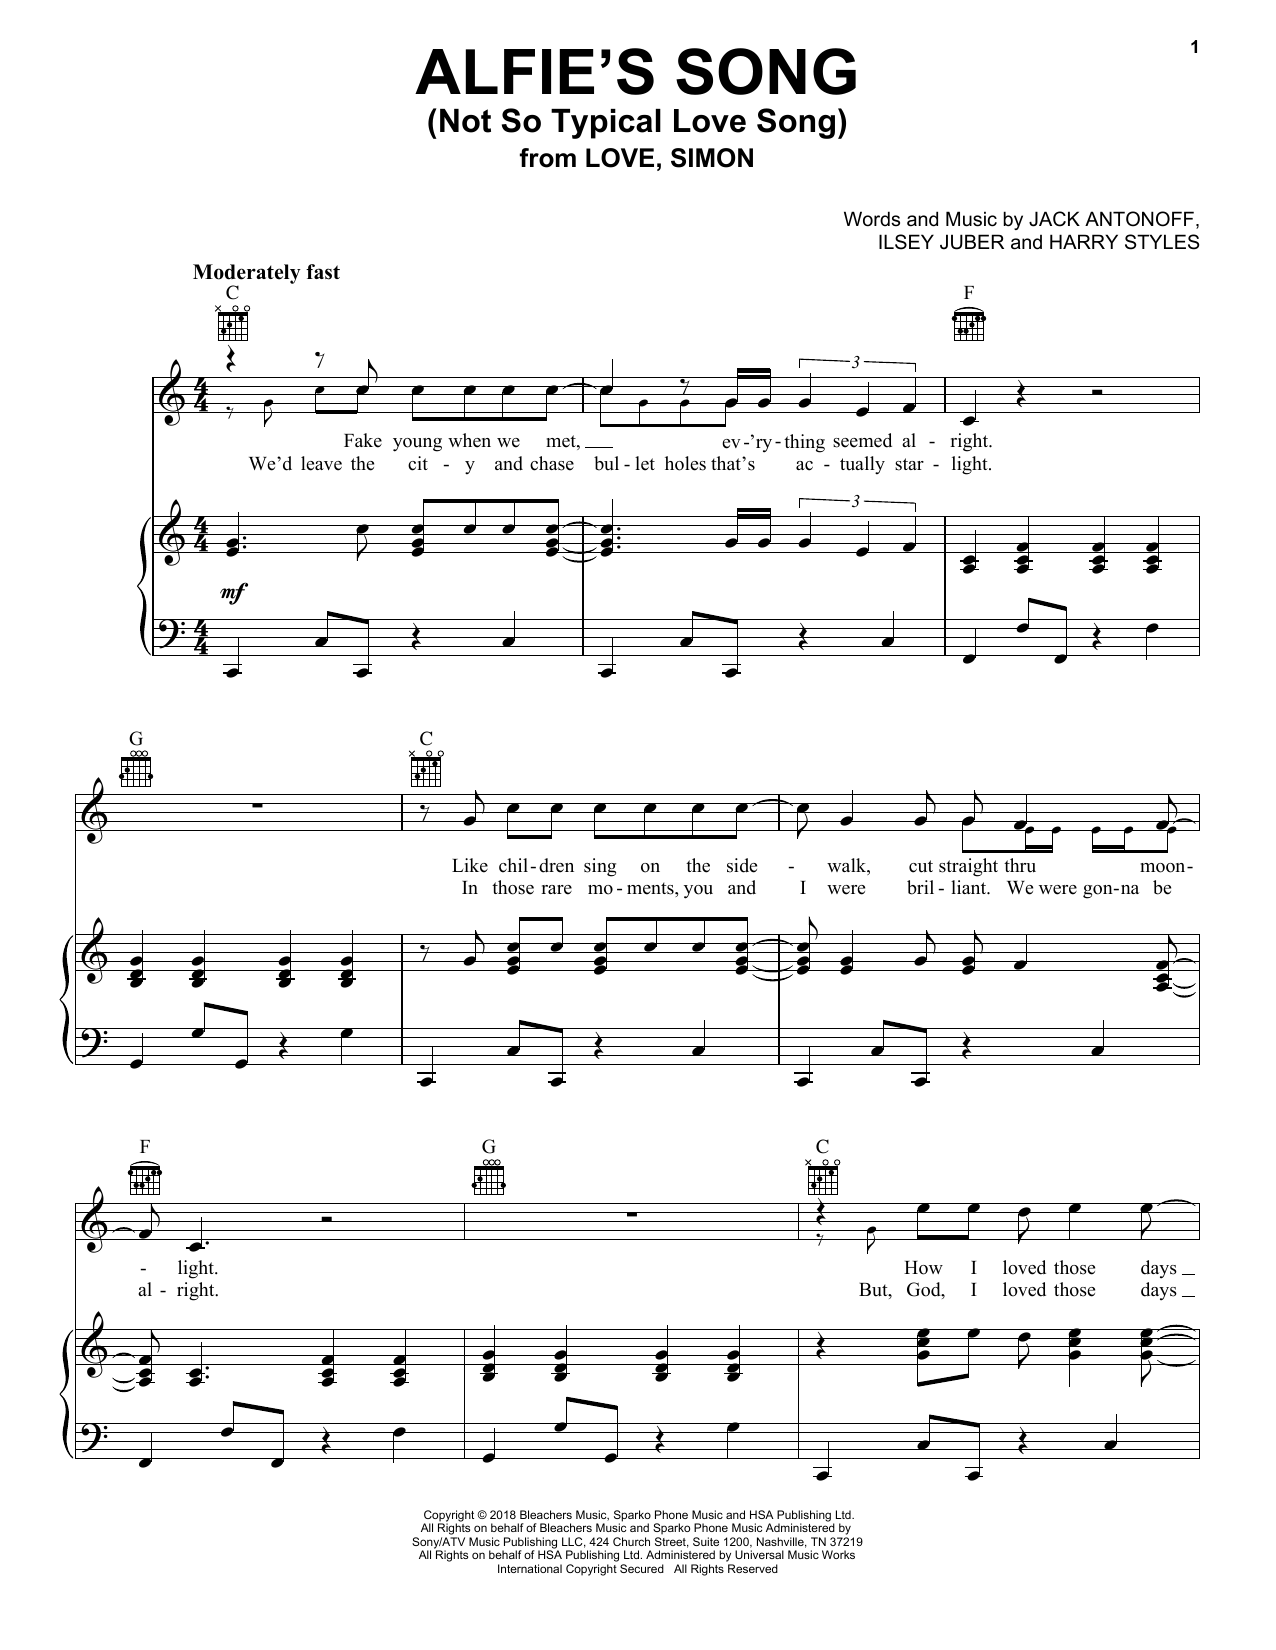 Alfie's Song (Not So Typical Love Song) (from Love, Simon) (Piano, Vocal & Guitar (Right-Hand Melody))